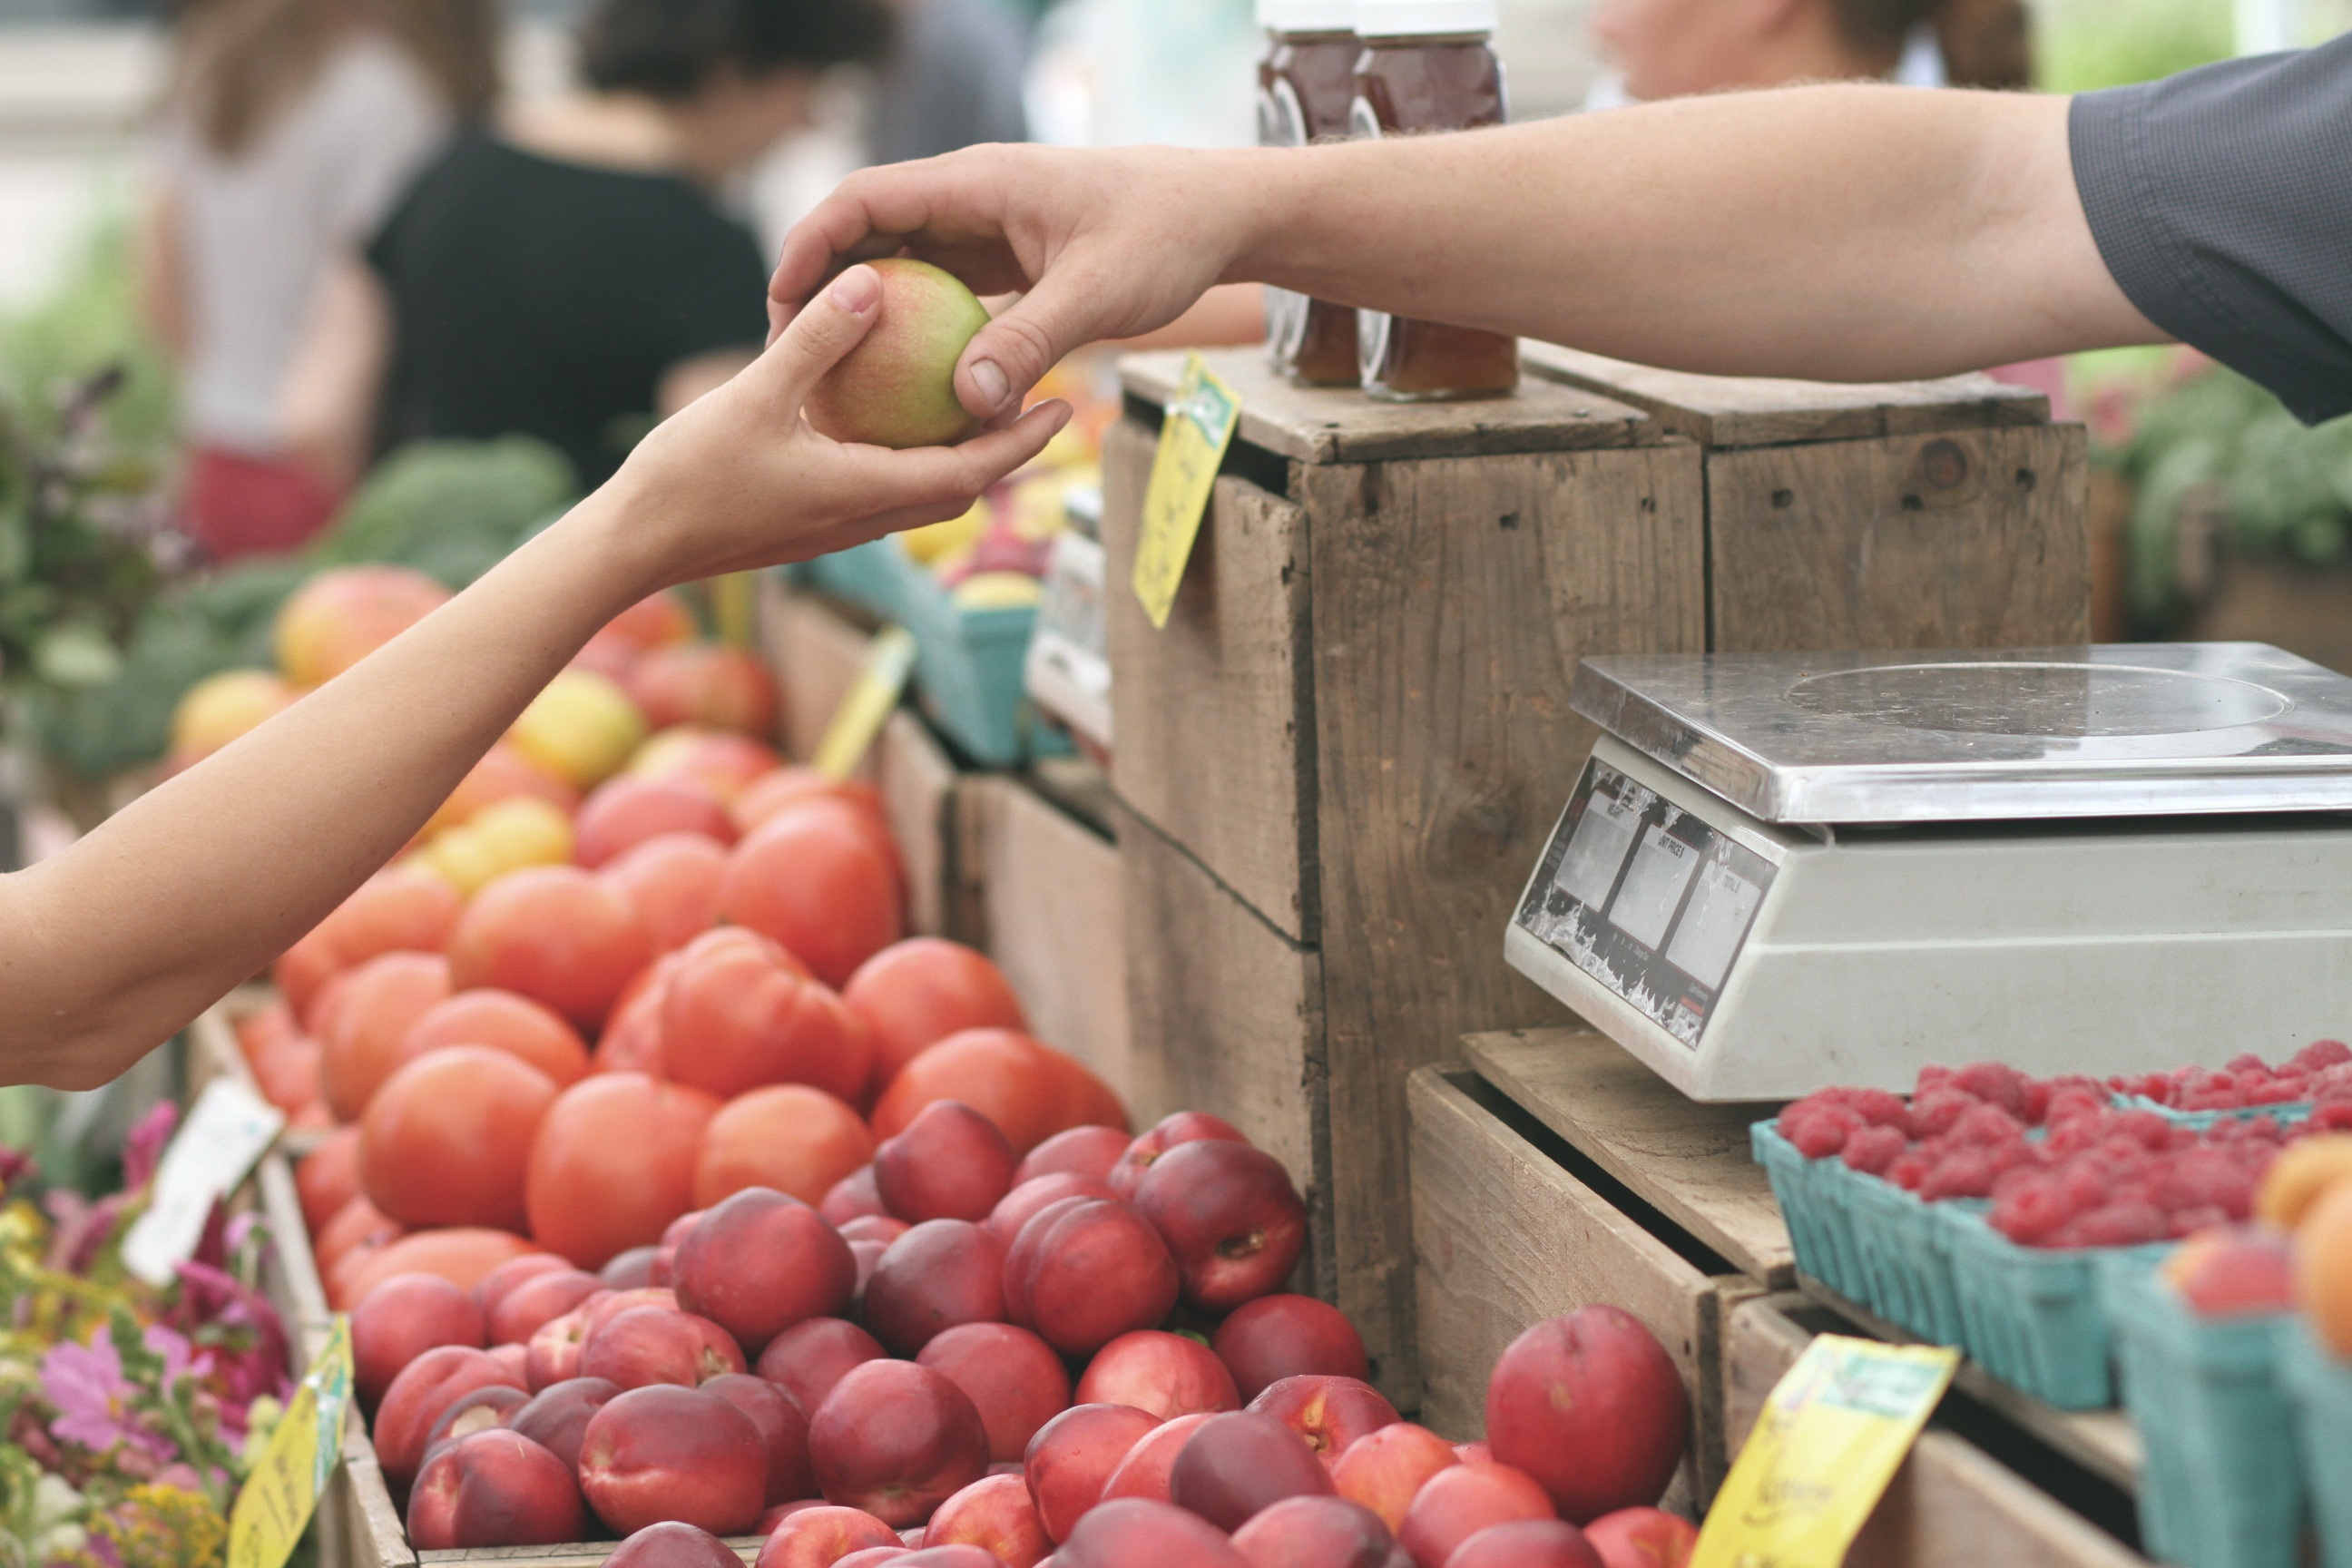 A person buying an apple at a farmers market.